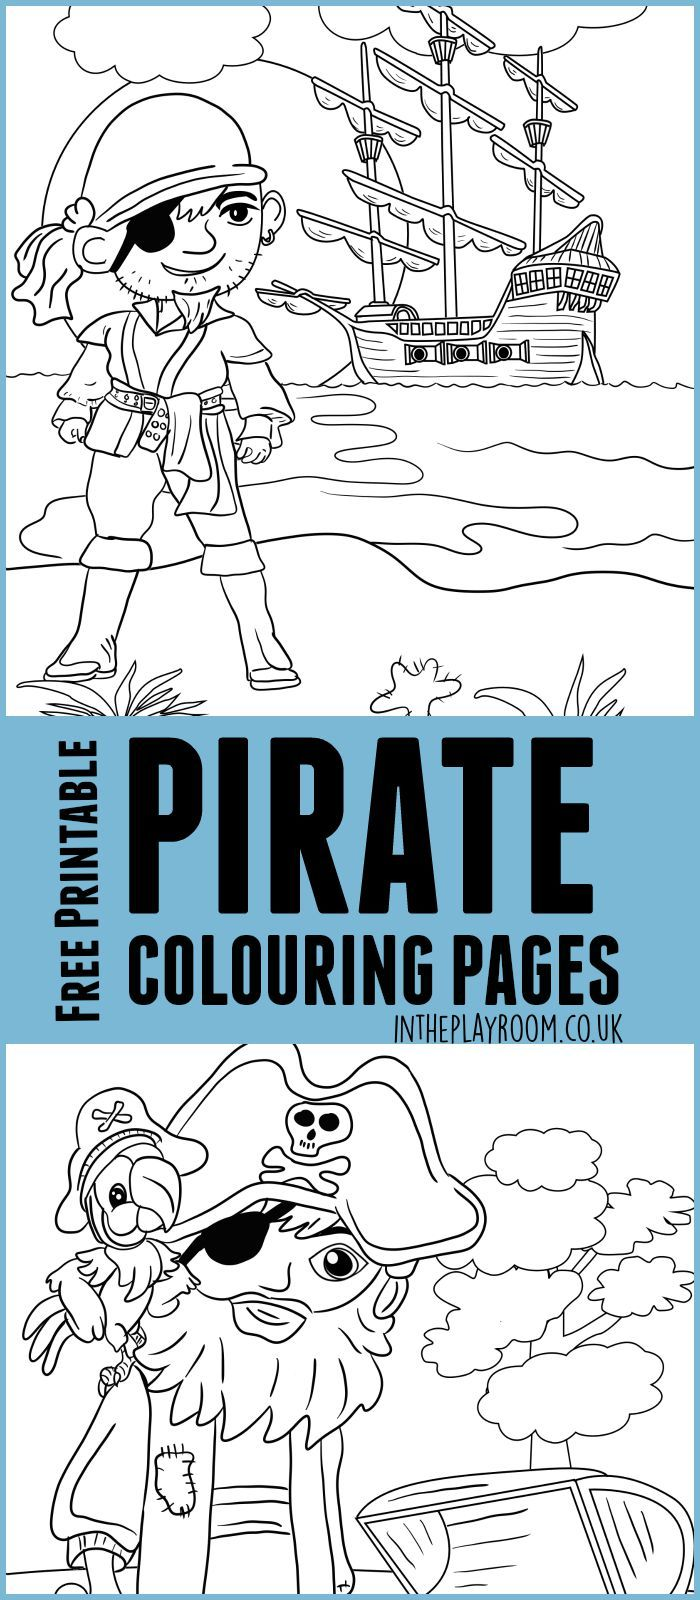 Pirate Colouring Pages for Kids | kindergarten | Pinterest | Free ...